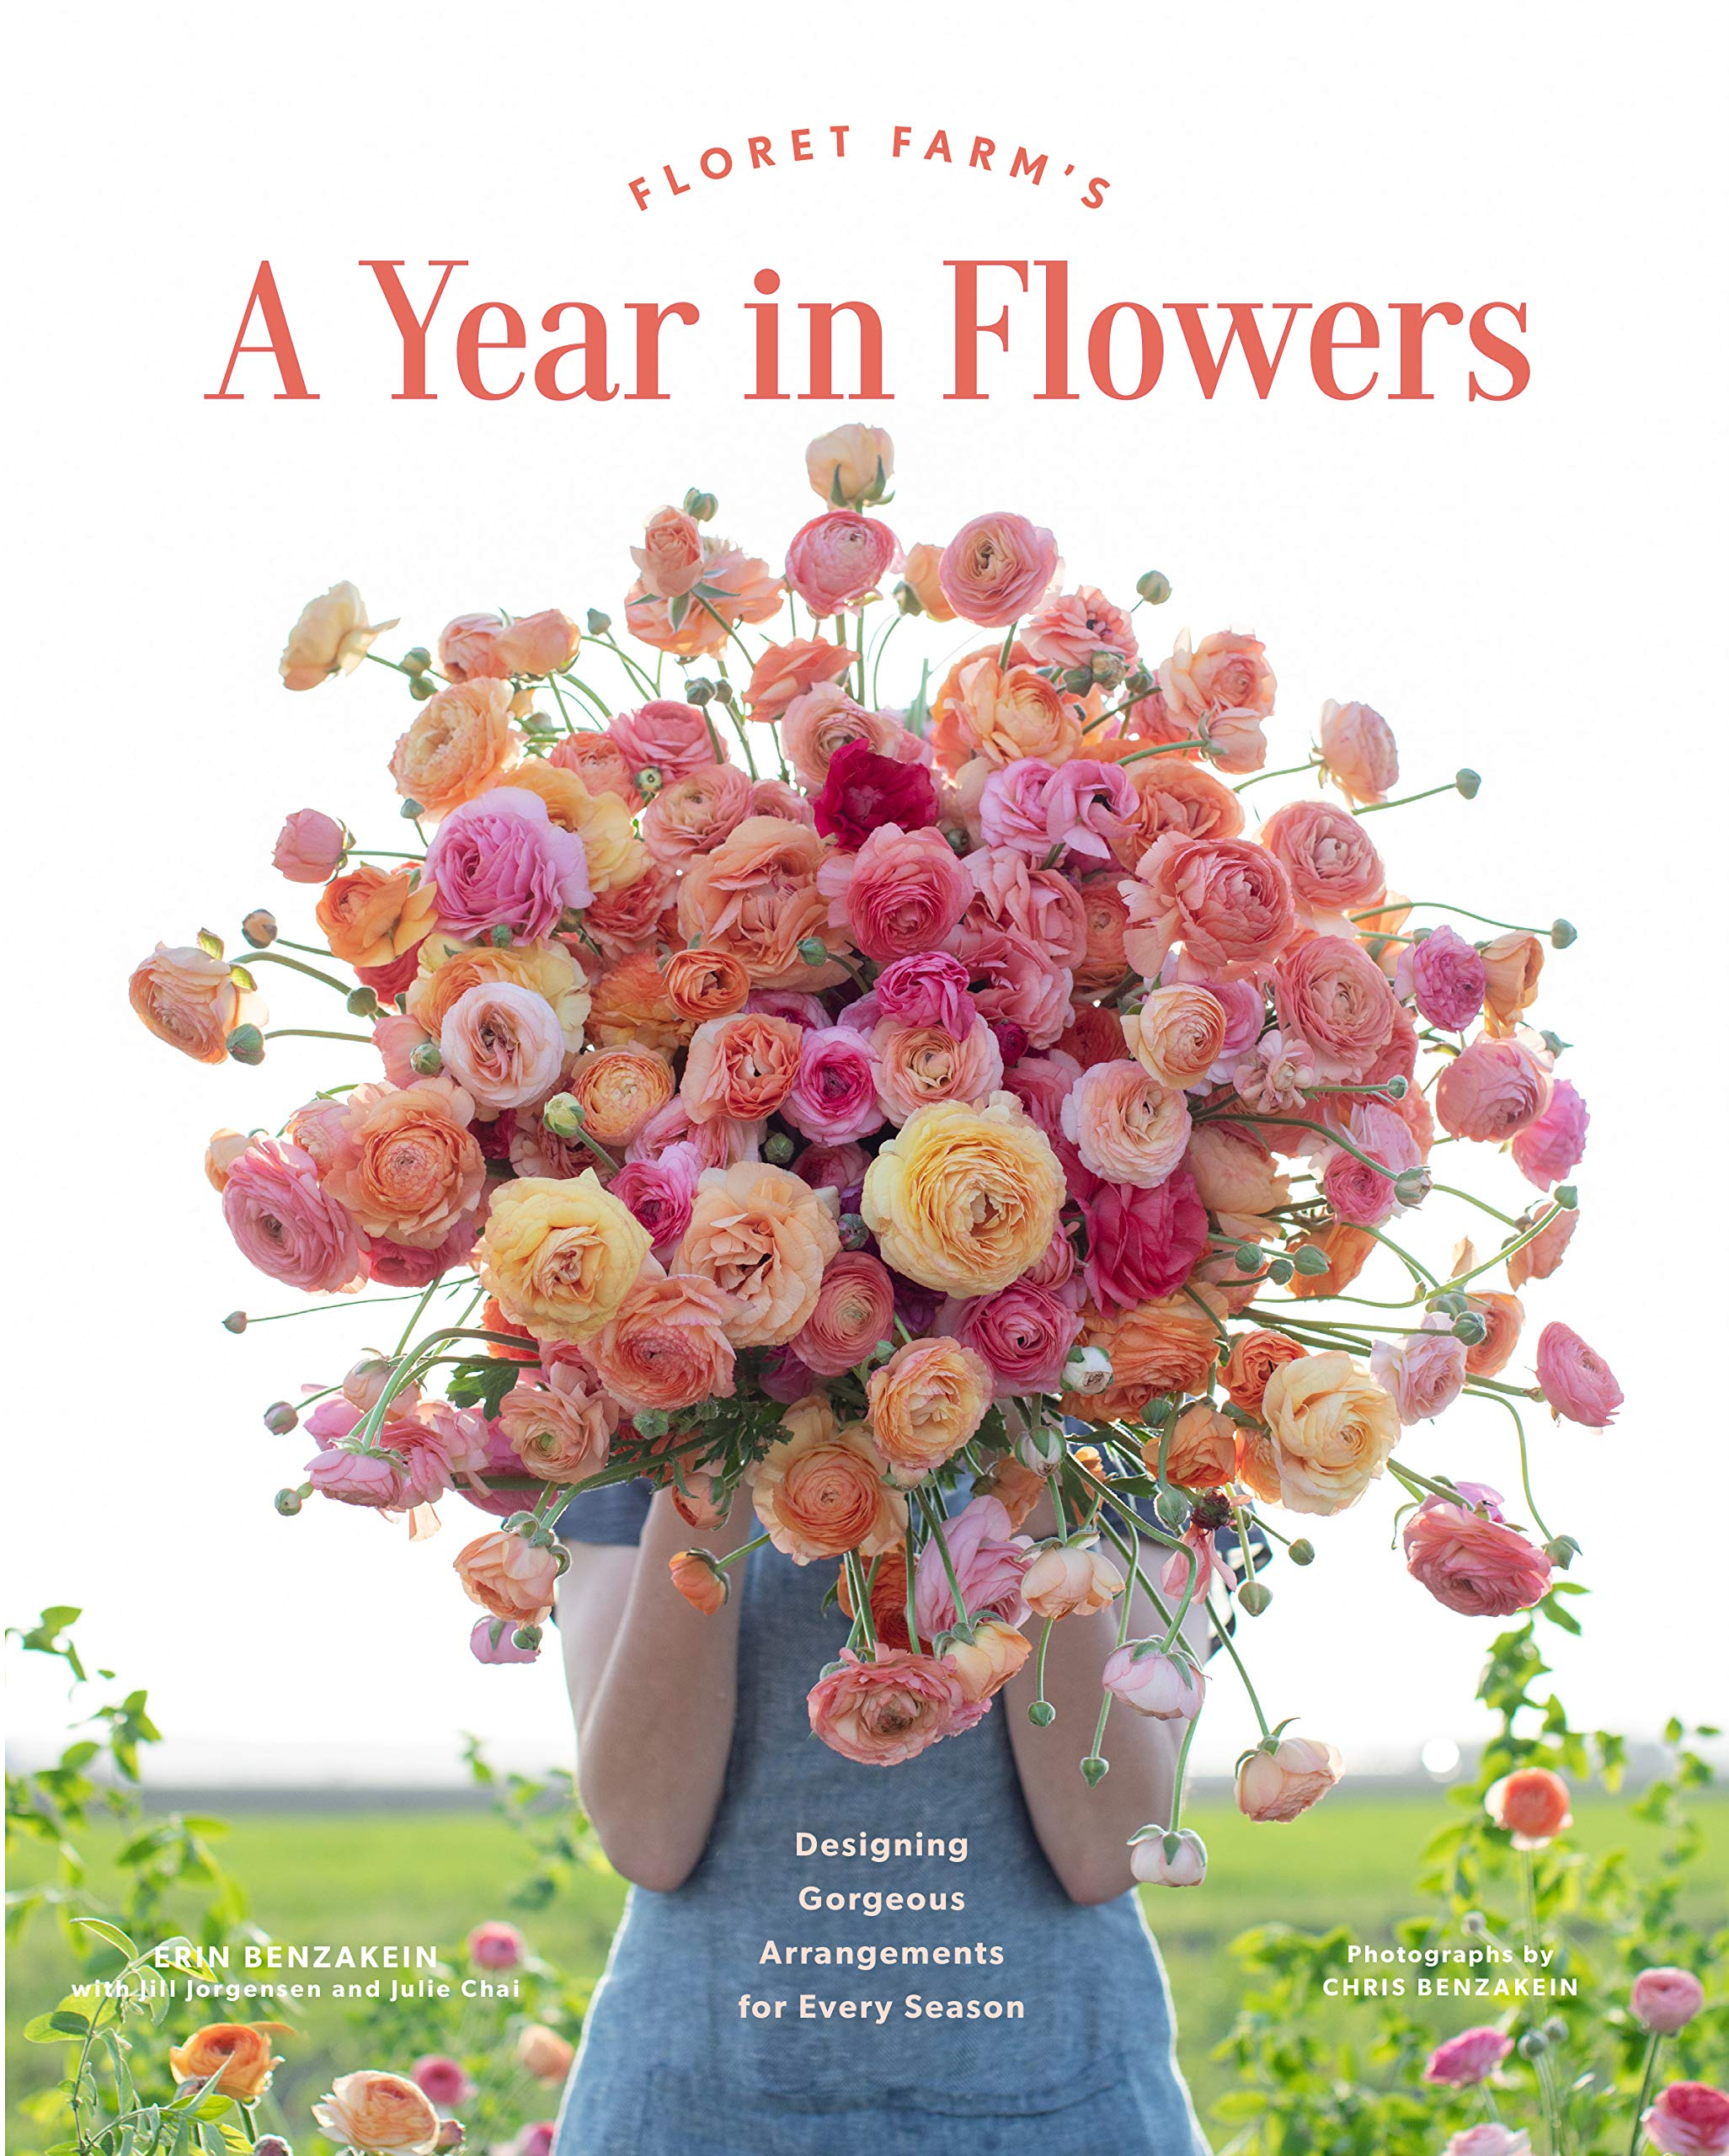 Floret Farm S A Year In Flowers Designing Gorgeous Arrangements